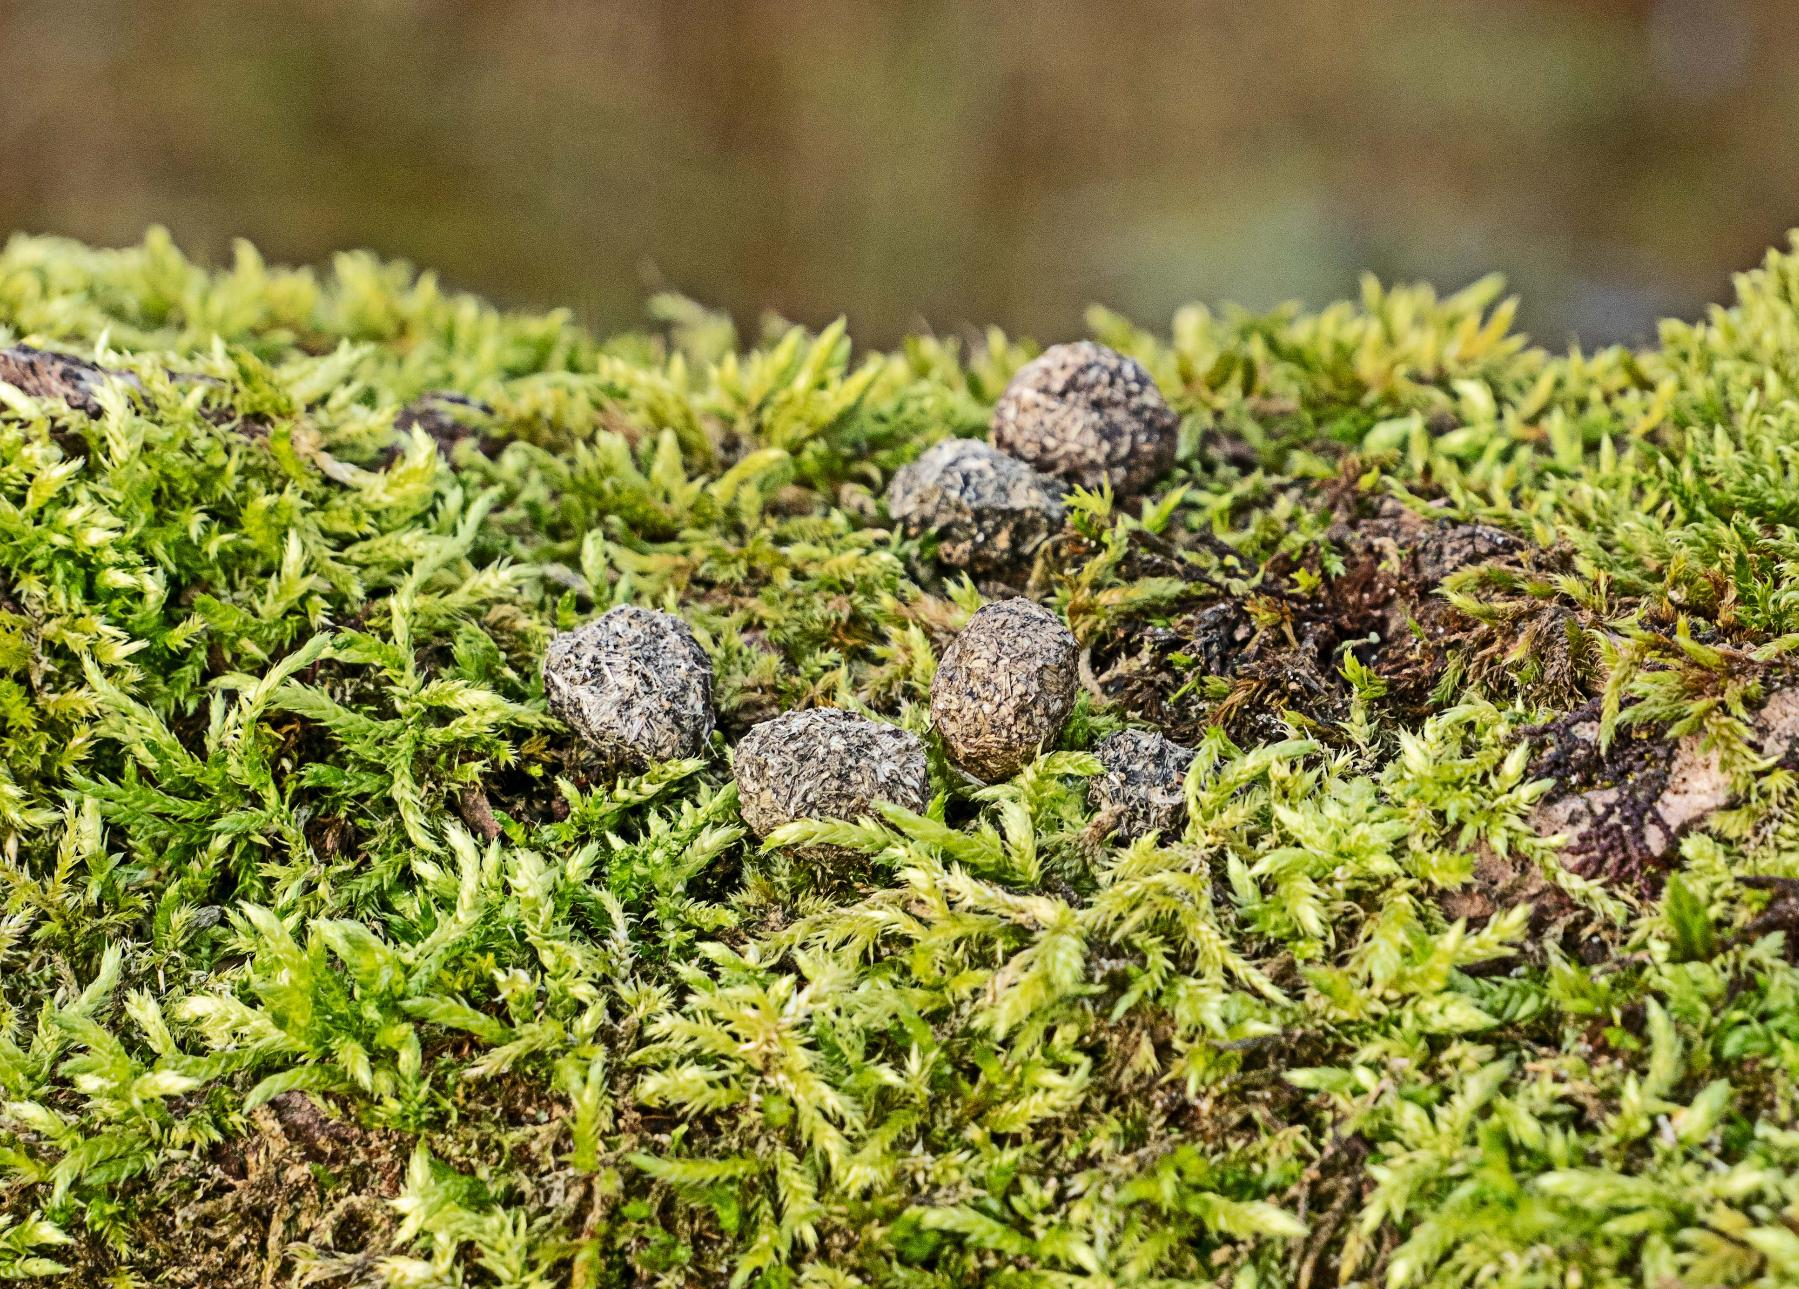 Black Poplar mosses and rabbit droppings